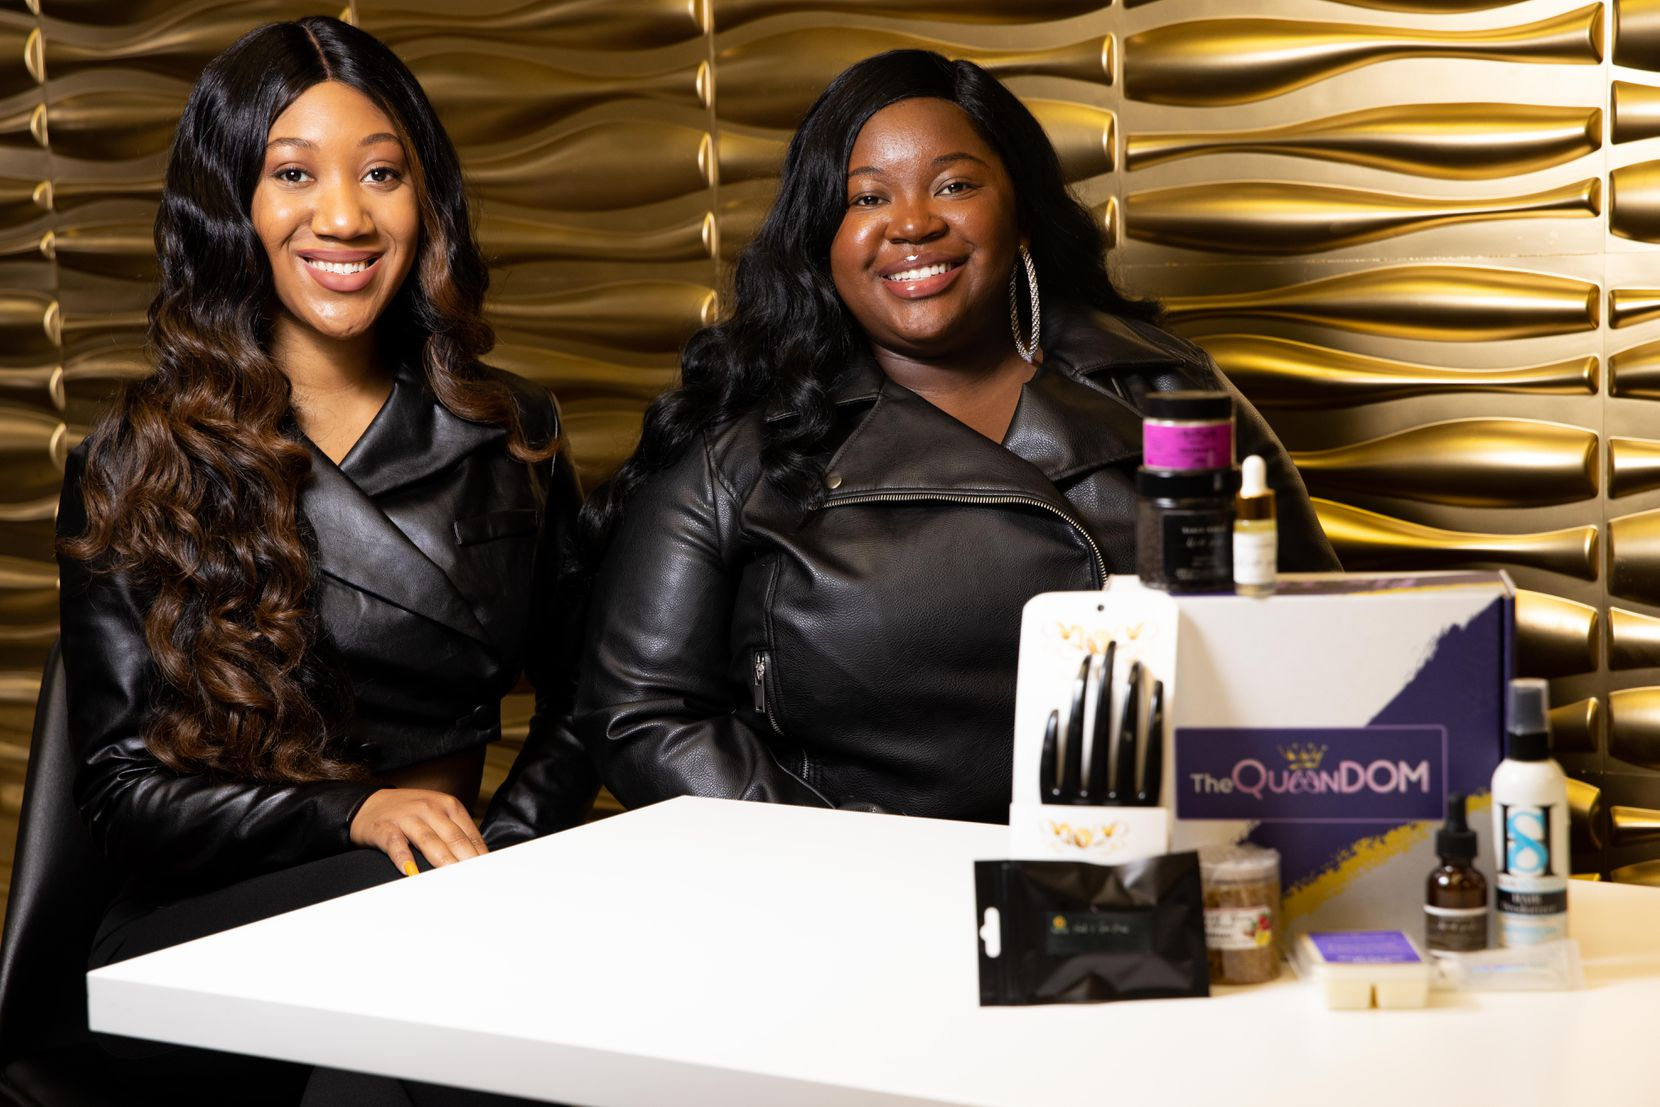 Bridgette Jones (left) and Valese Jones wanted to spotlight minority small-business owners when they started The Queendom Beauty Box last October.